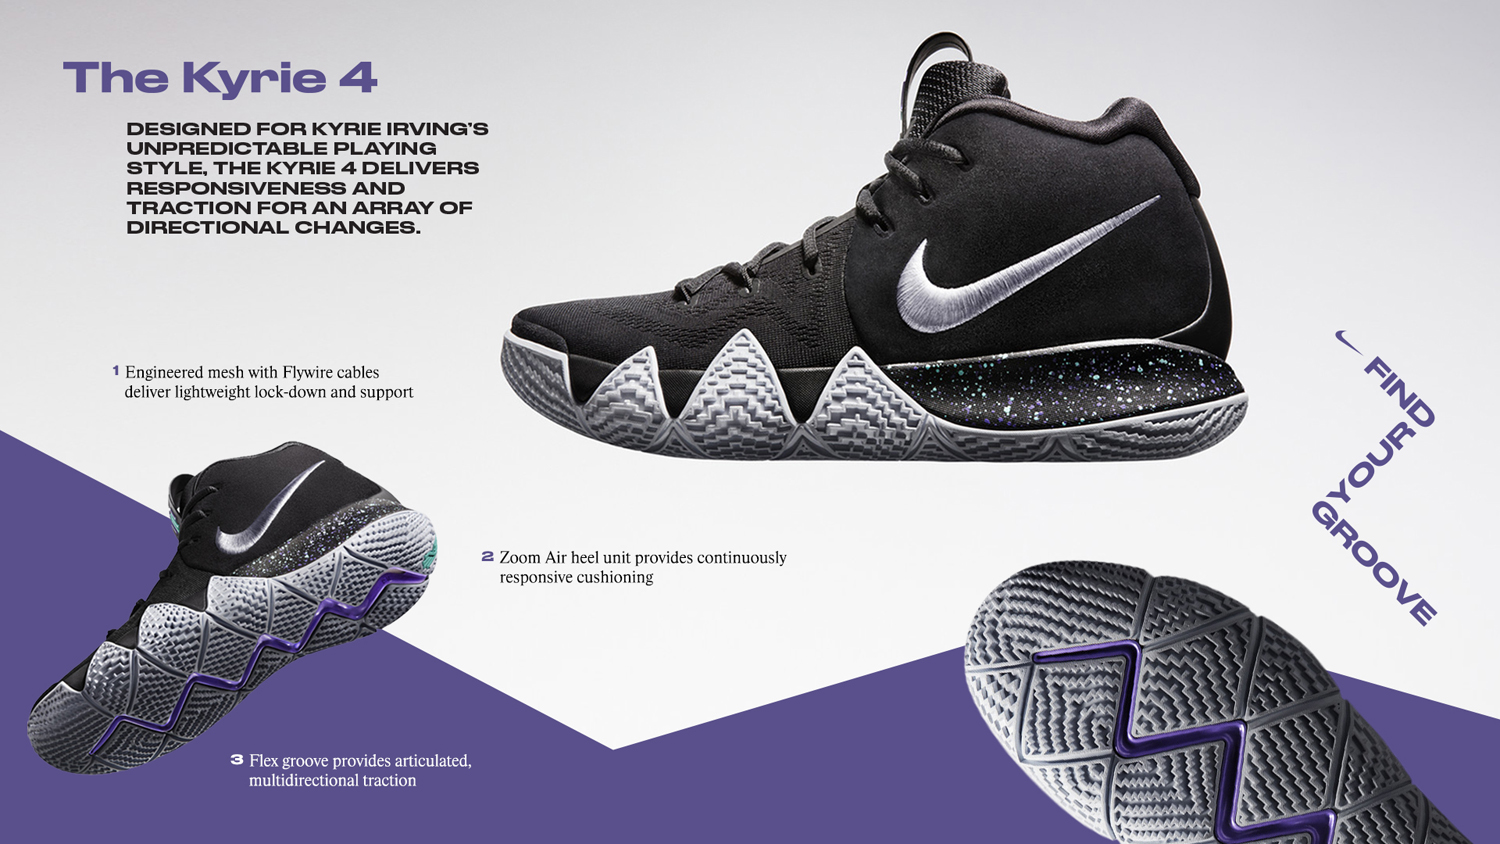 new product a1843 b190c Nike Unveils the Kyrie 4 | Analykix